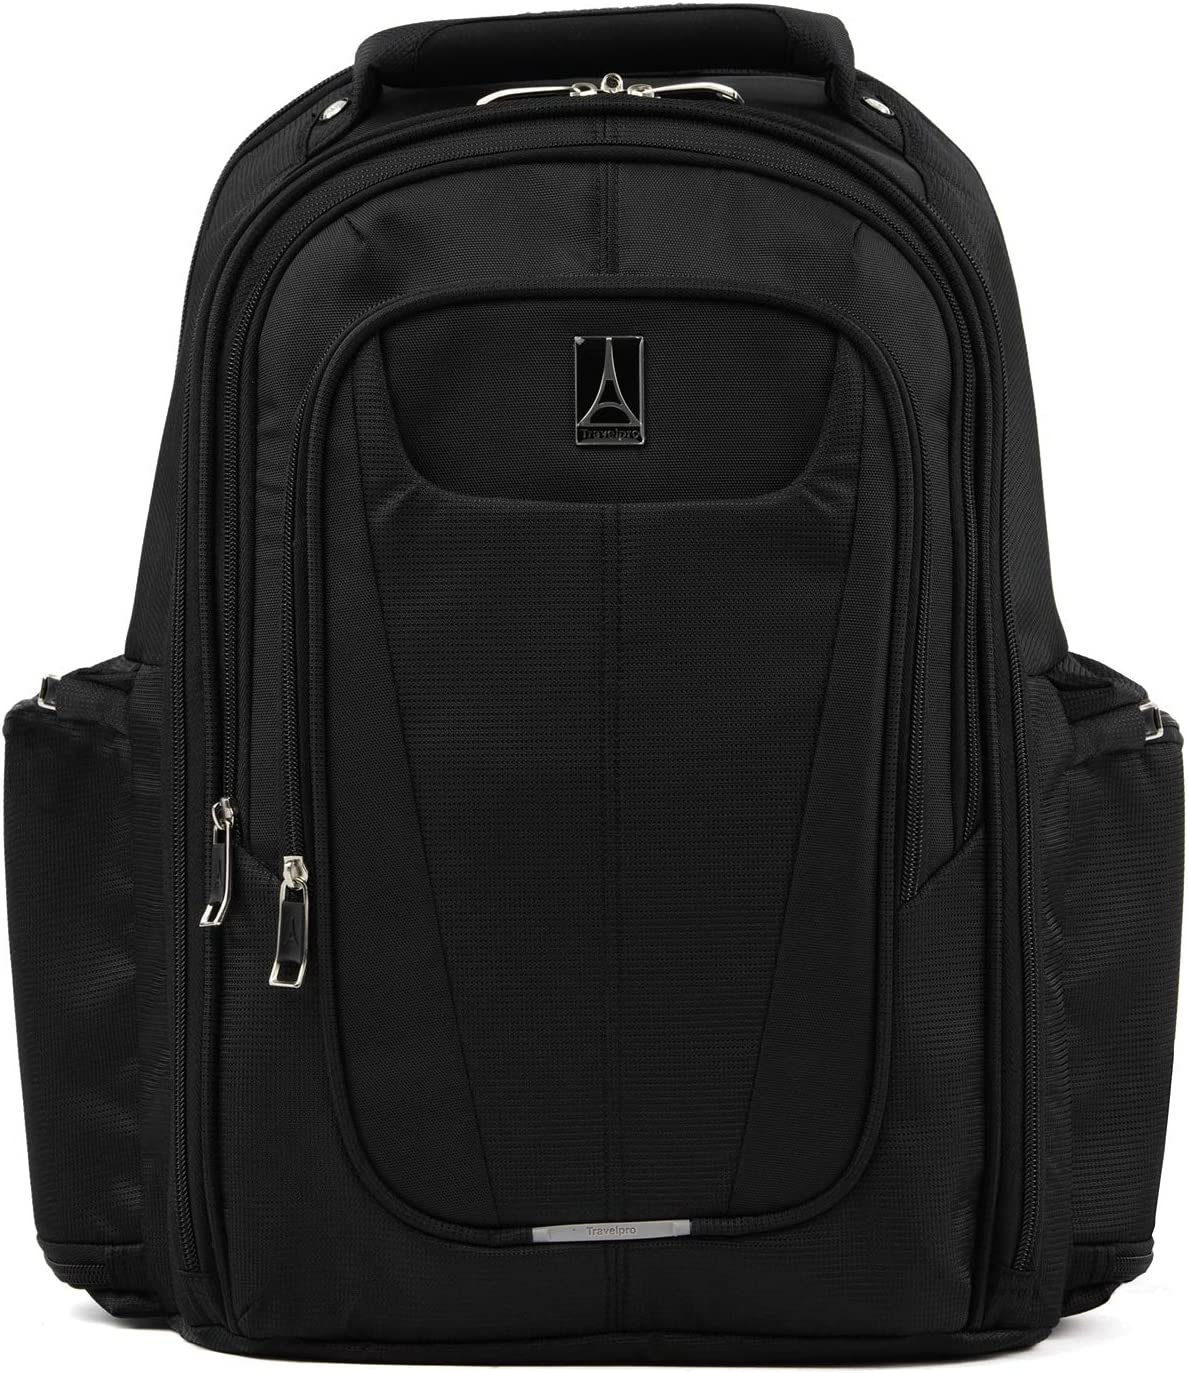 Travelpro Maxlite 5-Lightweight Underseat Laptop Backpack, Black, 17.5-Inch